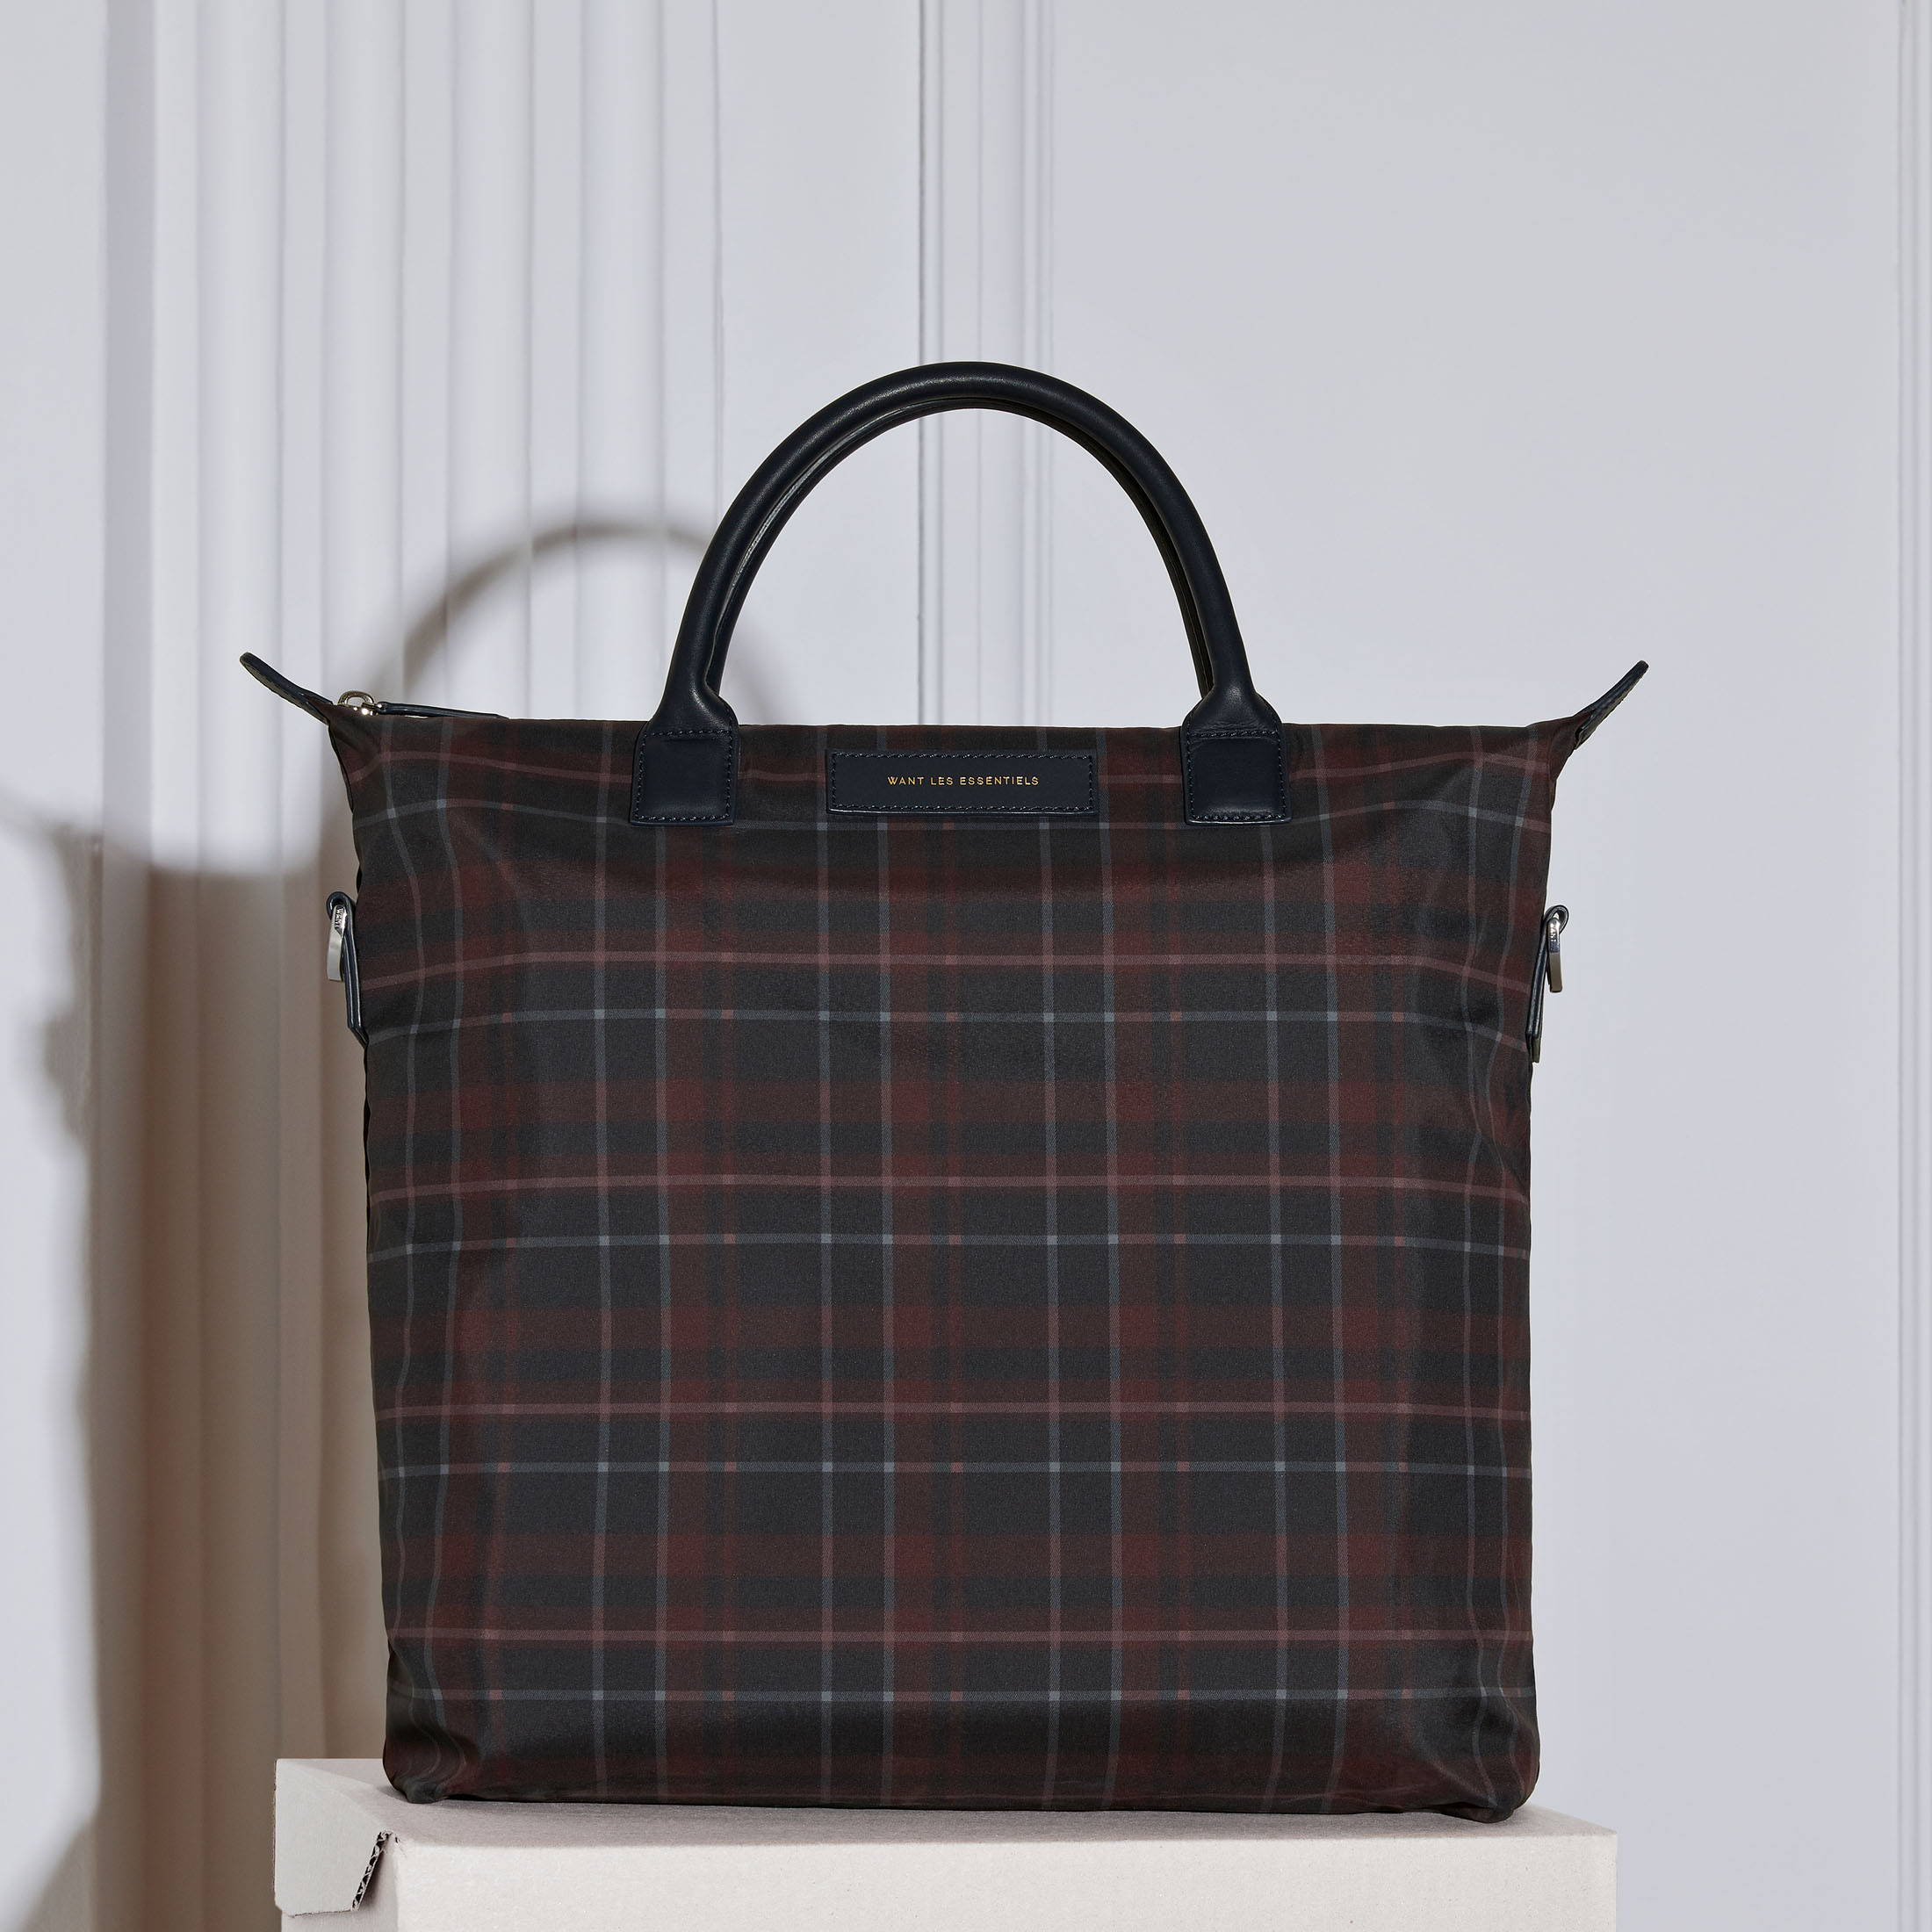 https://wantapothecary.com/products/ohare-nylon-shopper-tote